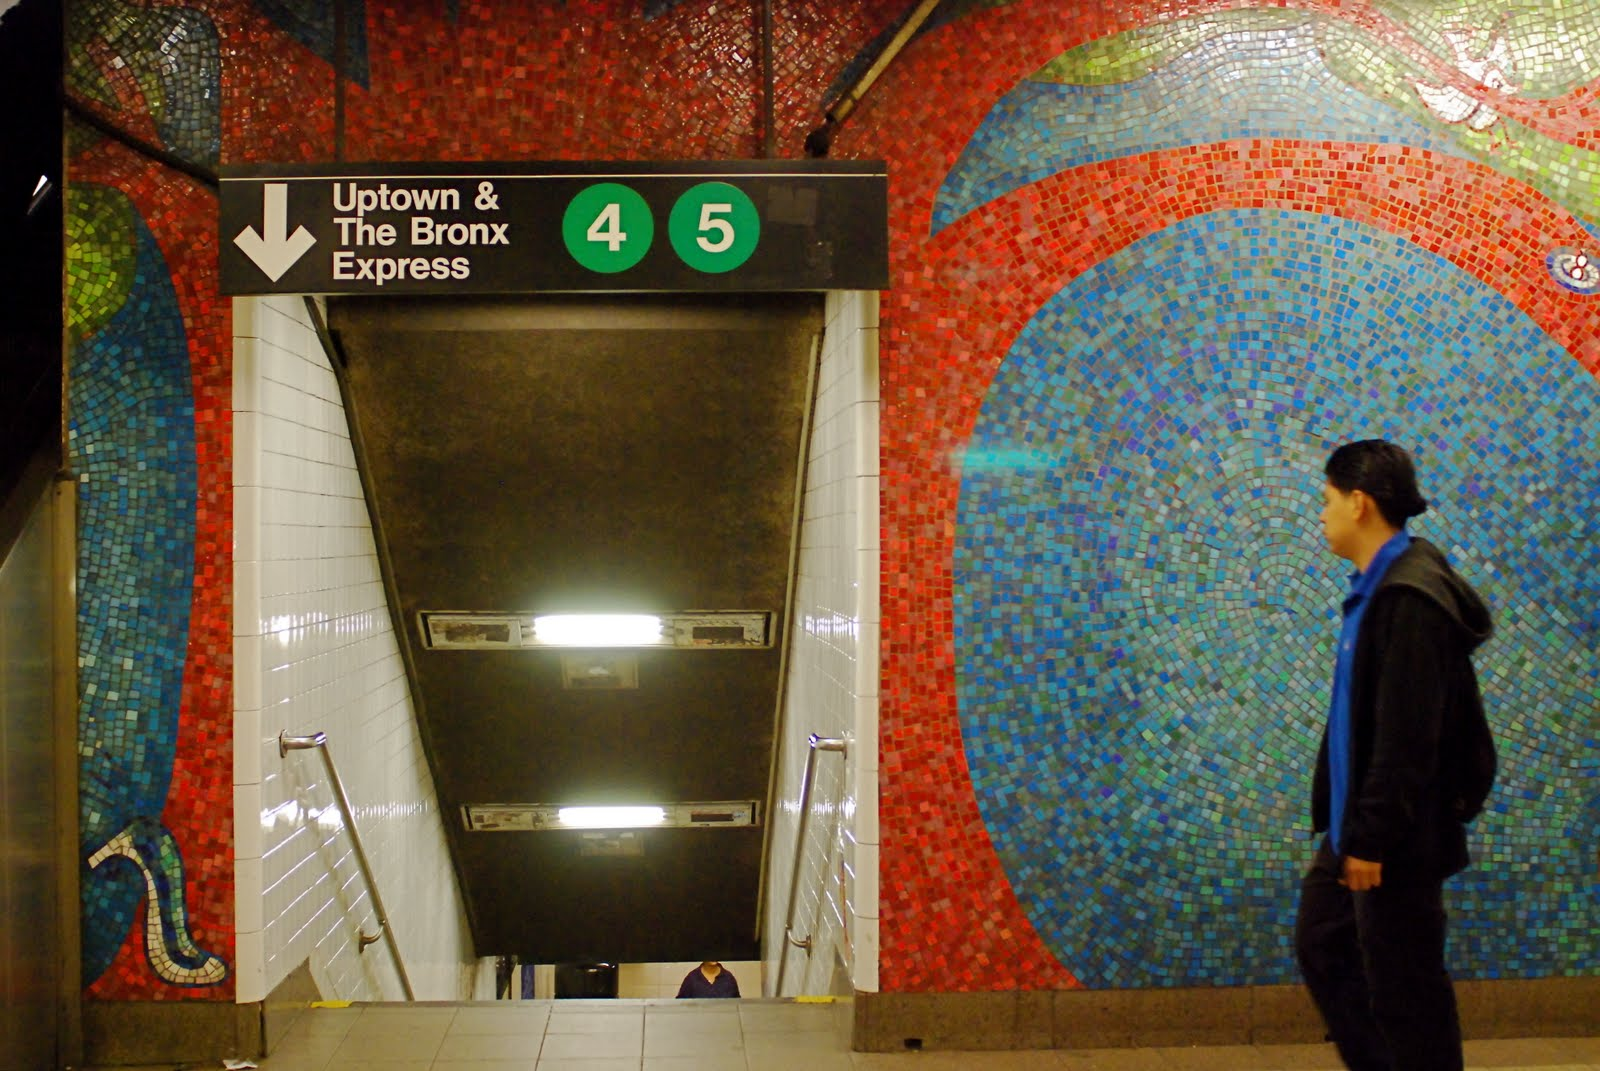 BLOOMING Is The Title Of This Beautiful Subway Art At Mezzanine Lexington Avenue 59th Street Station Large Scale Mosaic Mural By